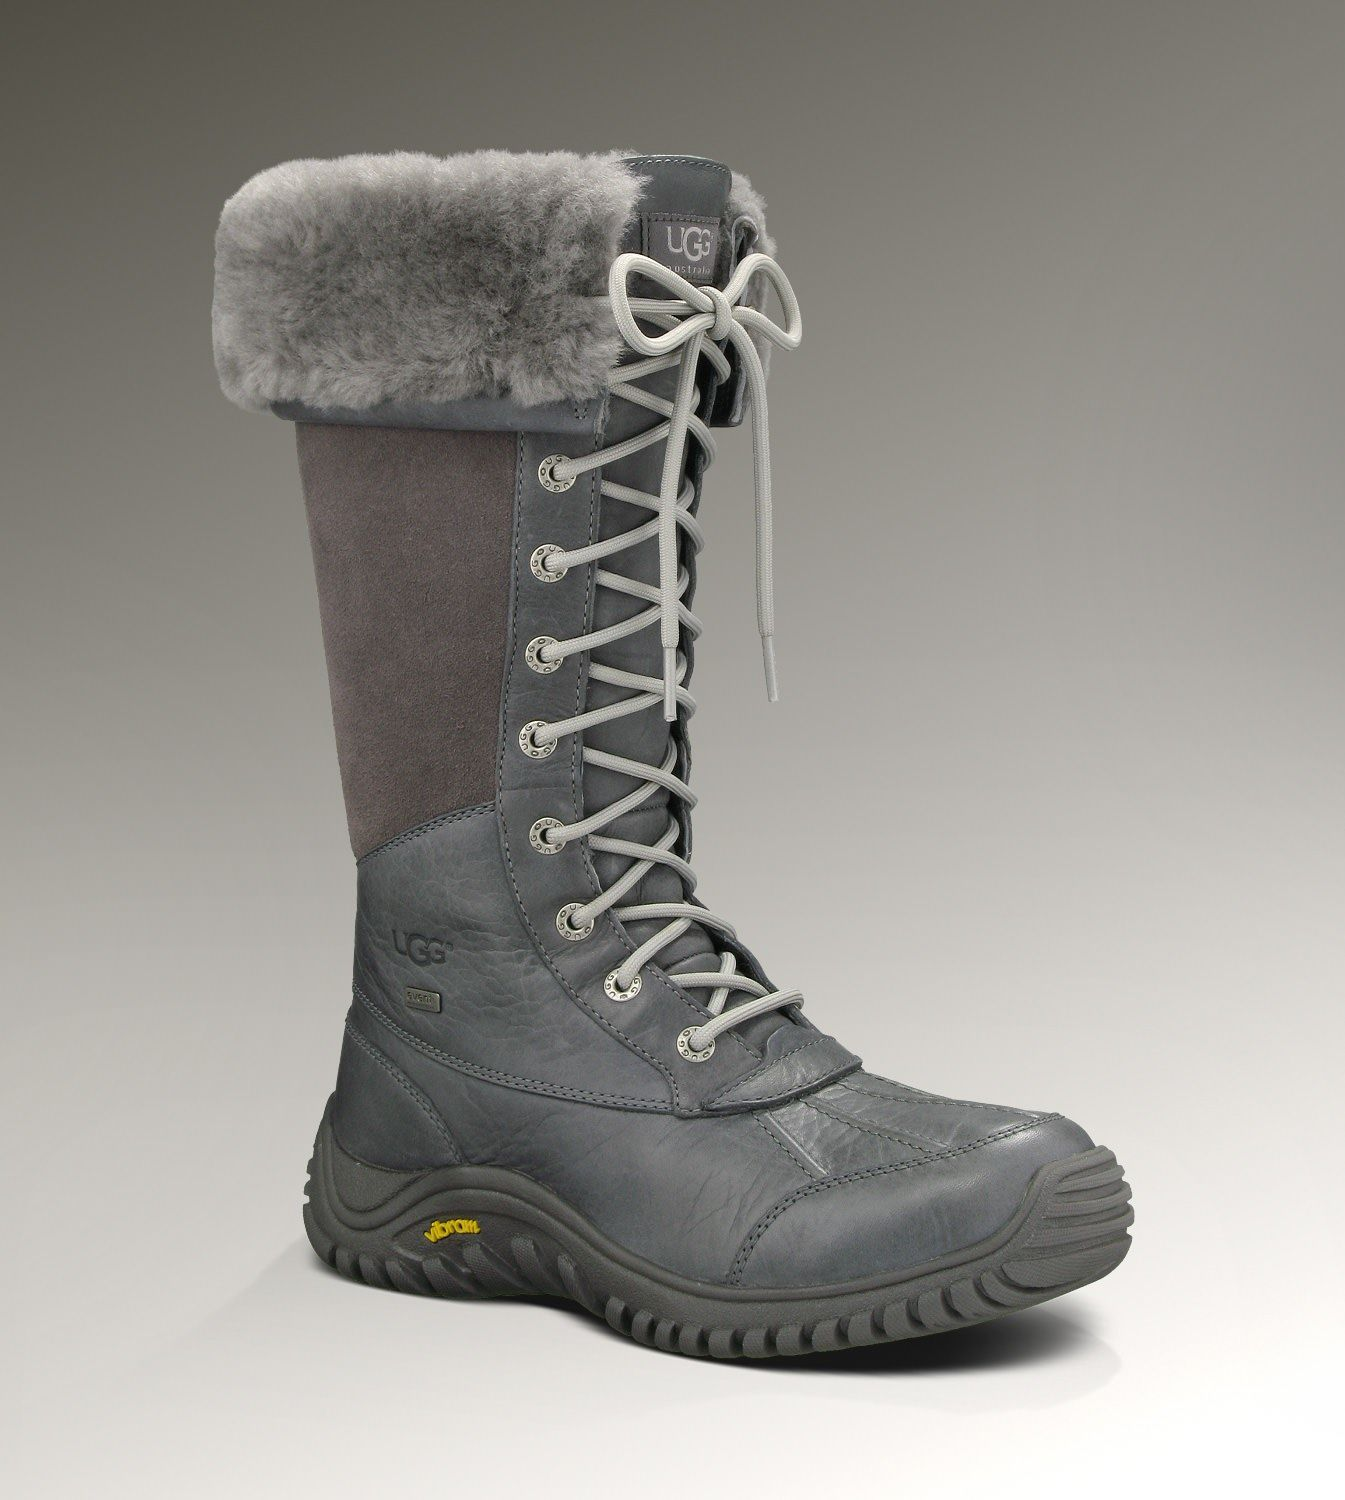 174bccc4403 Buy Women's Adirondack Tall Winter Snow Boots Online | UGG ...